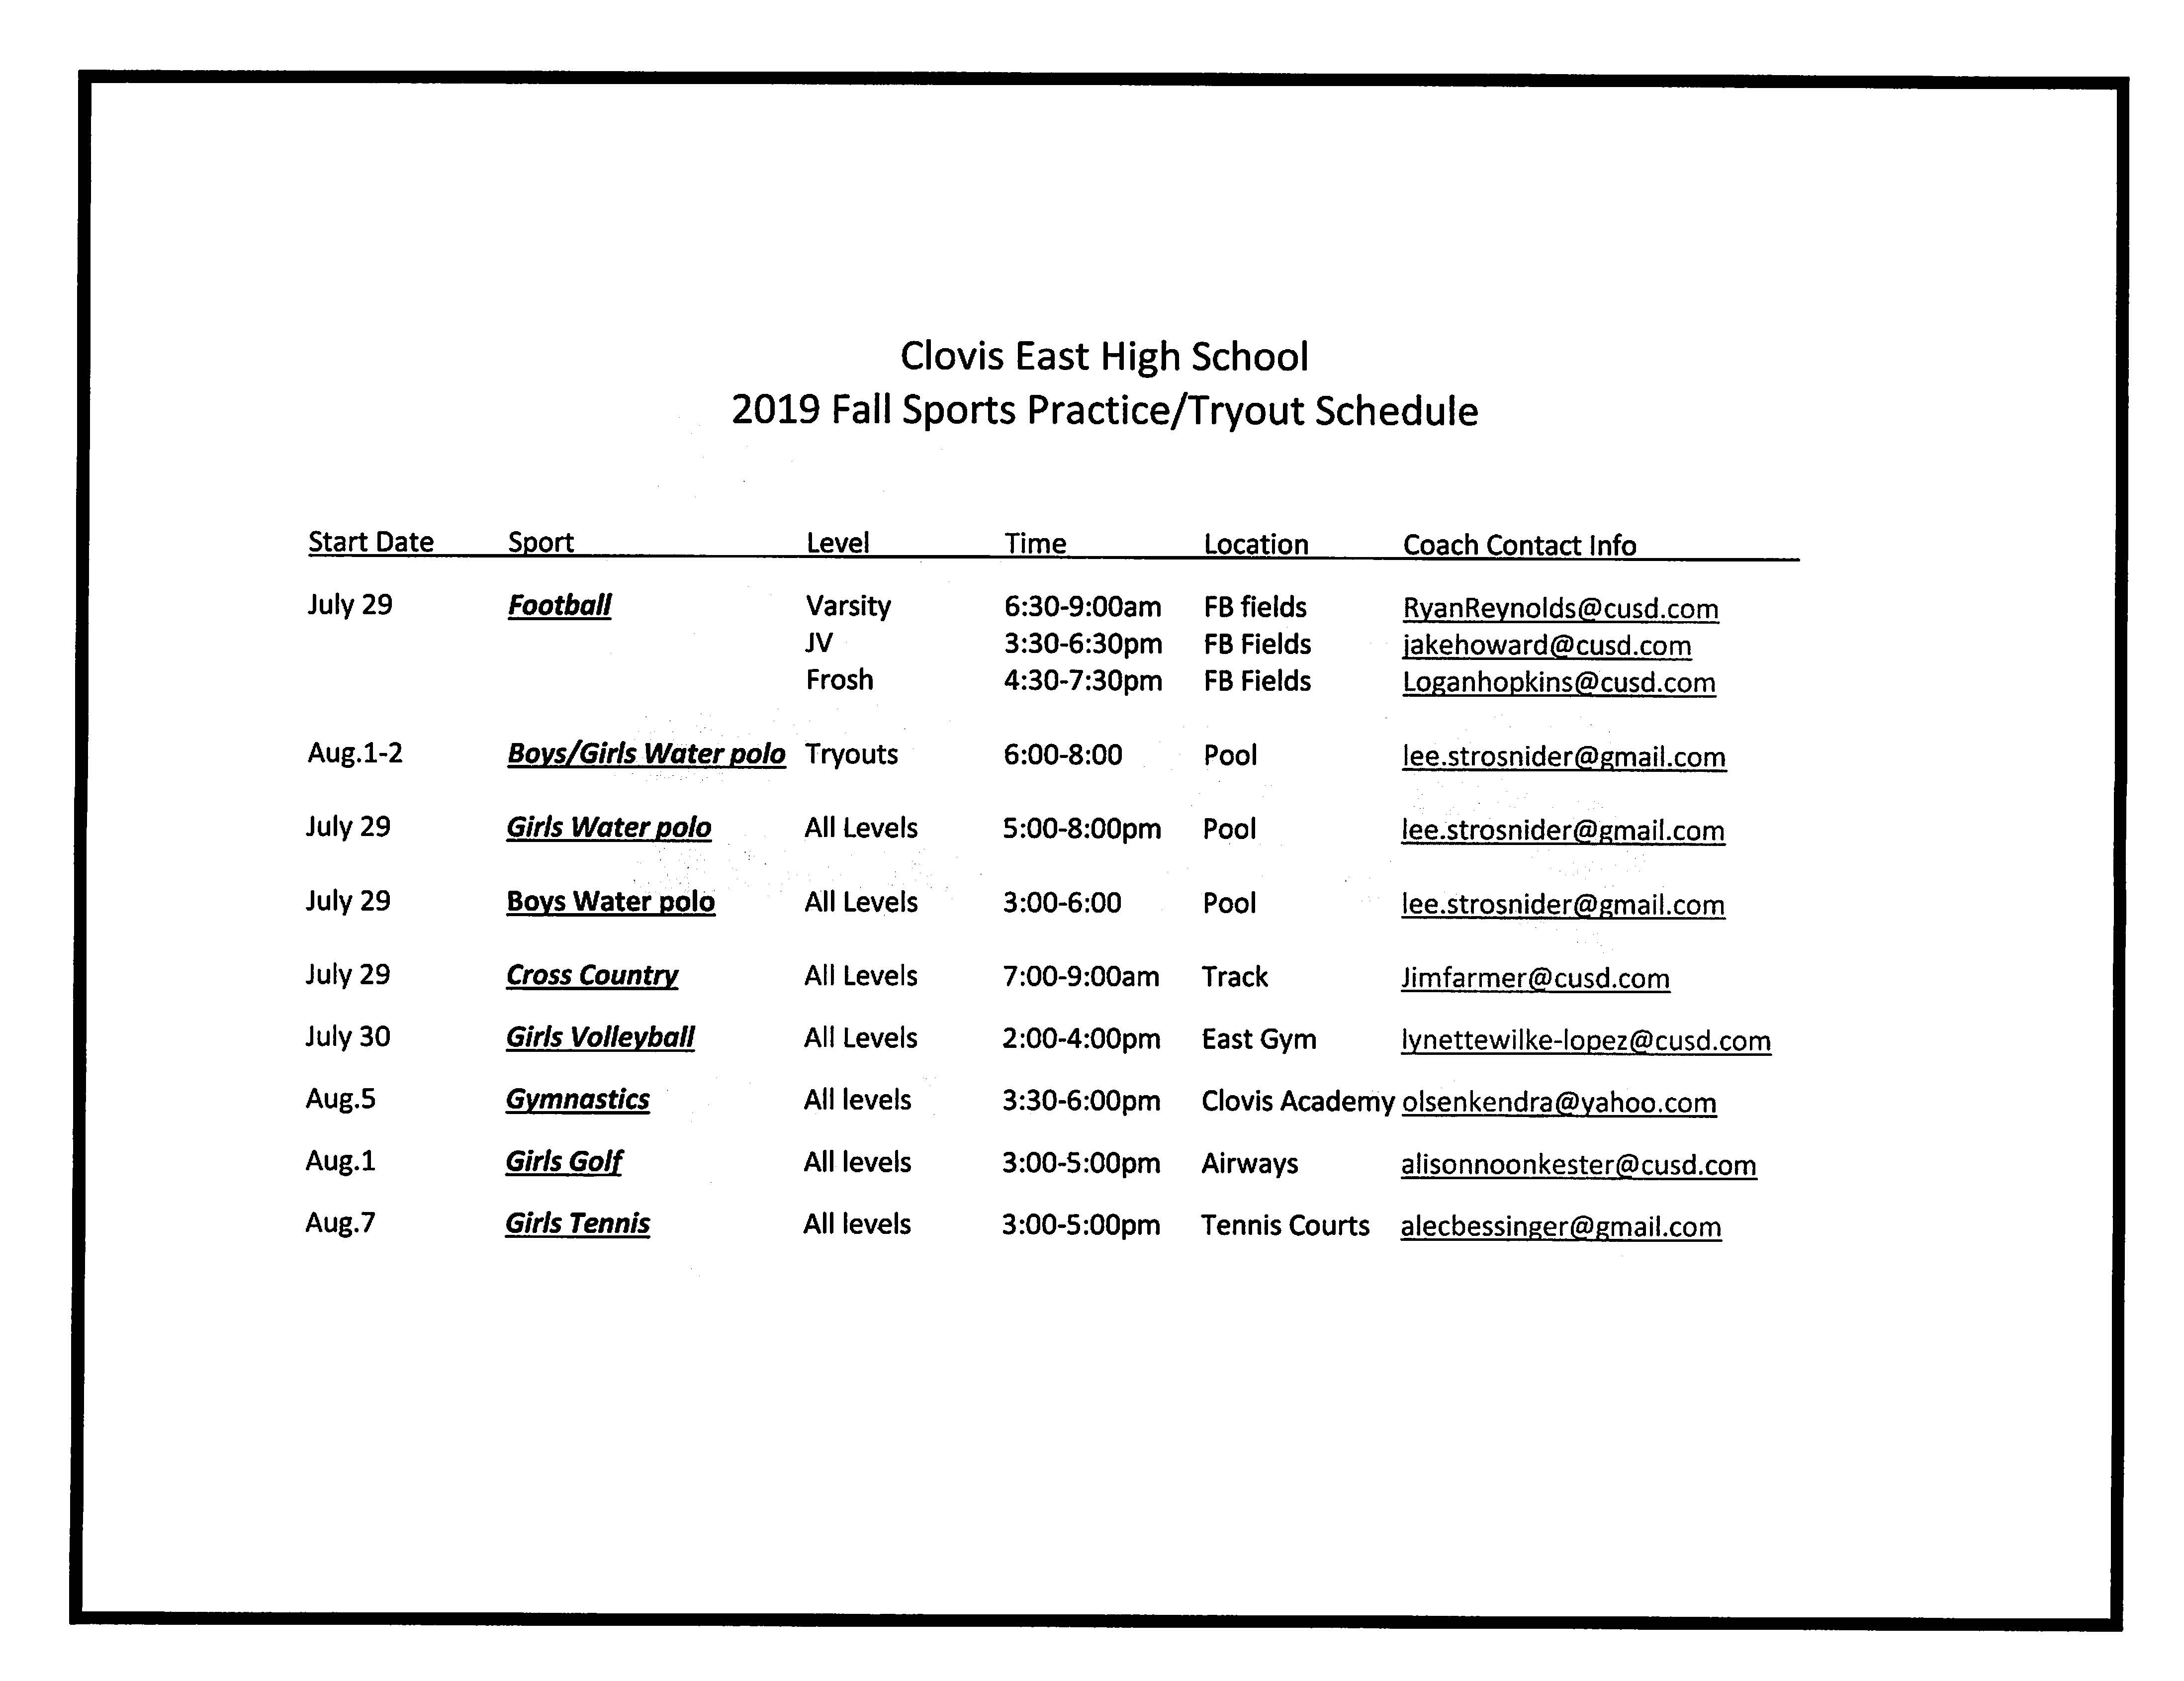 2019 Fall Sports Practice/Tryout Schedule